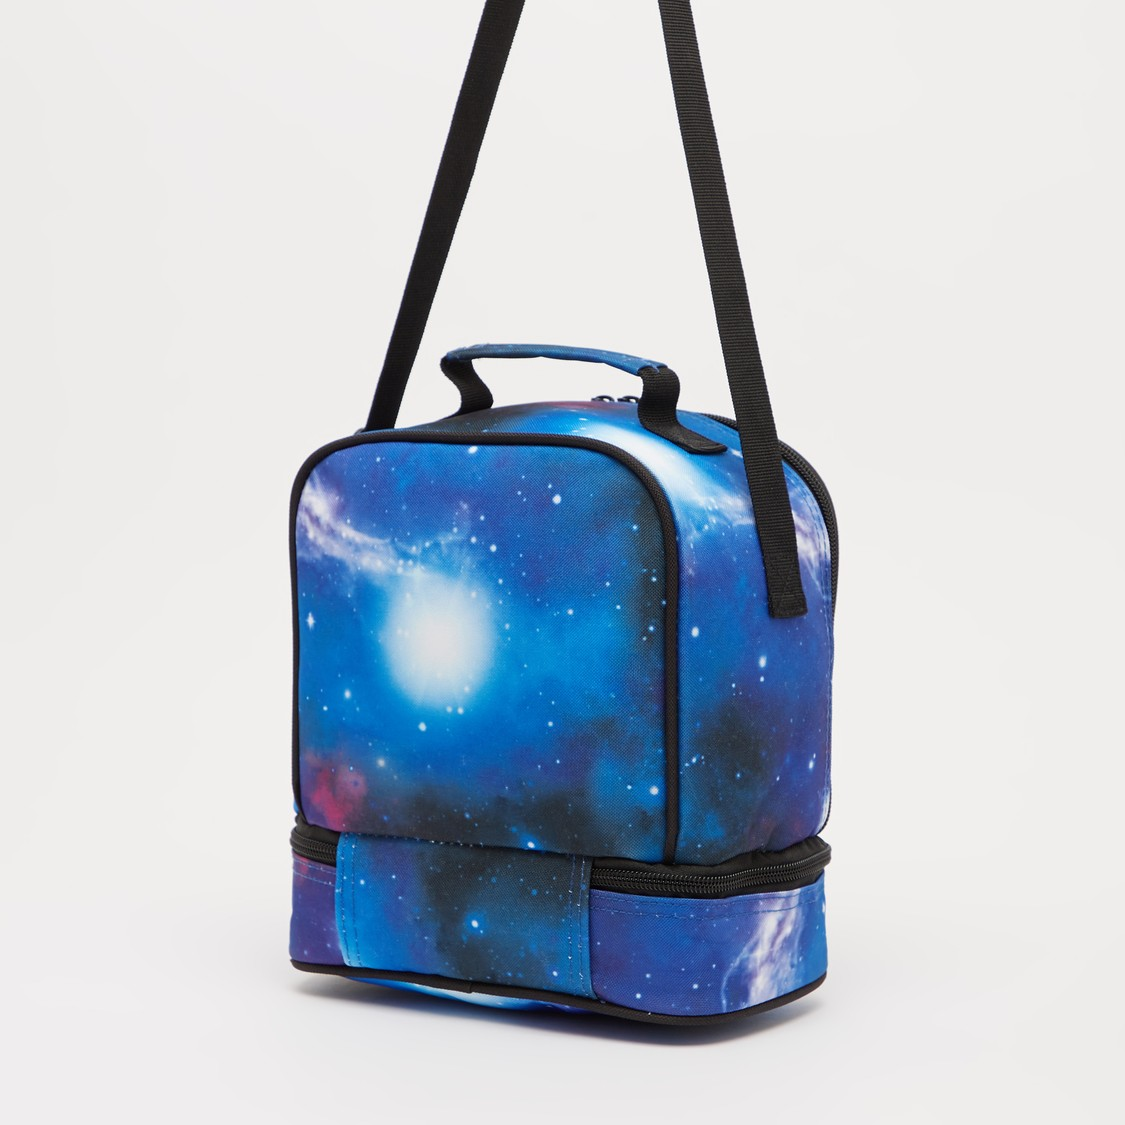 NASA Print Lunch Bag with Adjustable Strap and Zip Closure